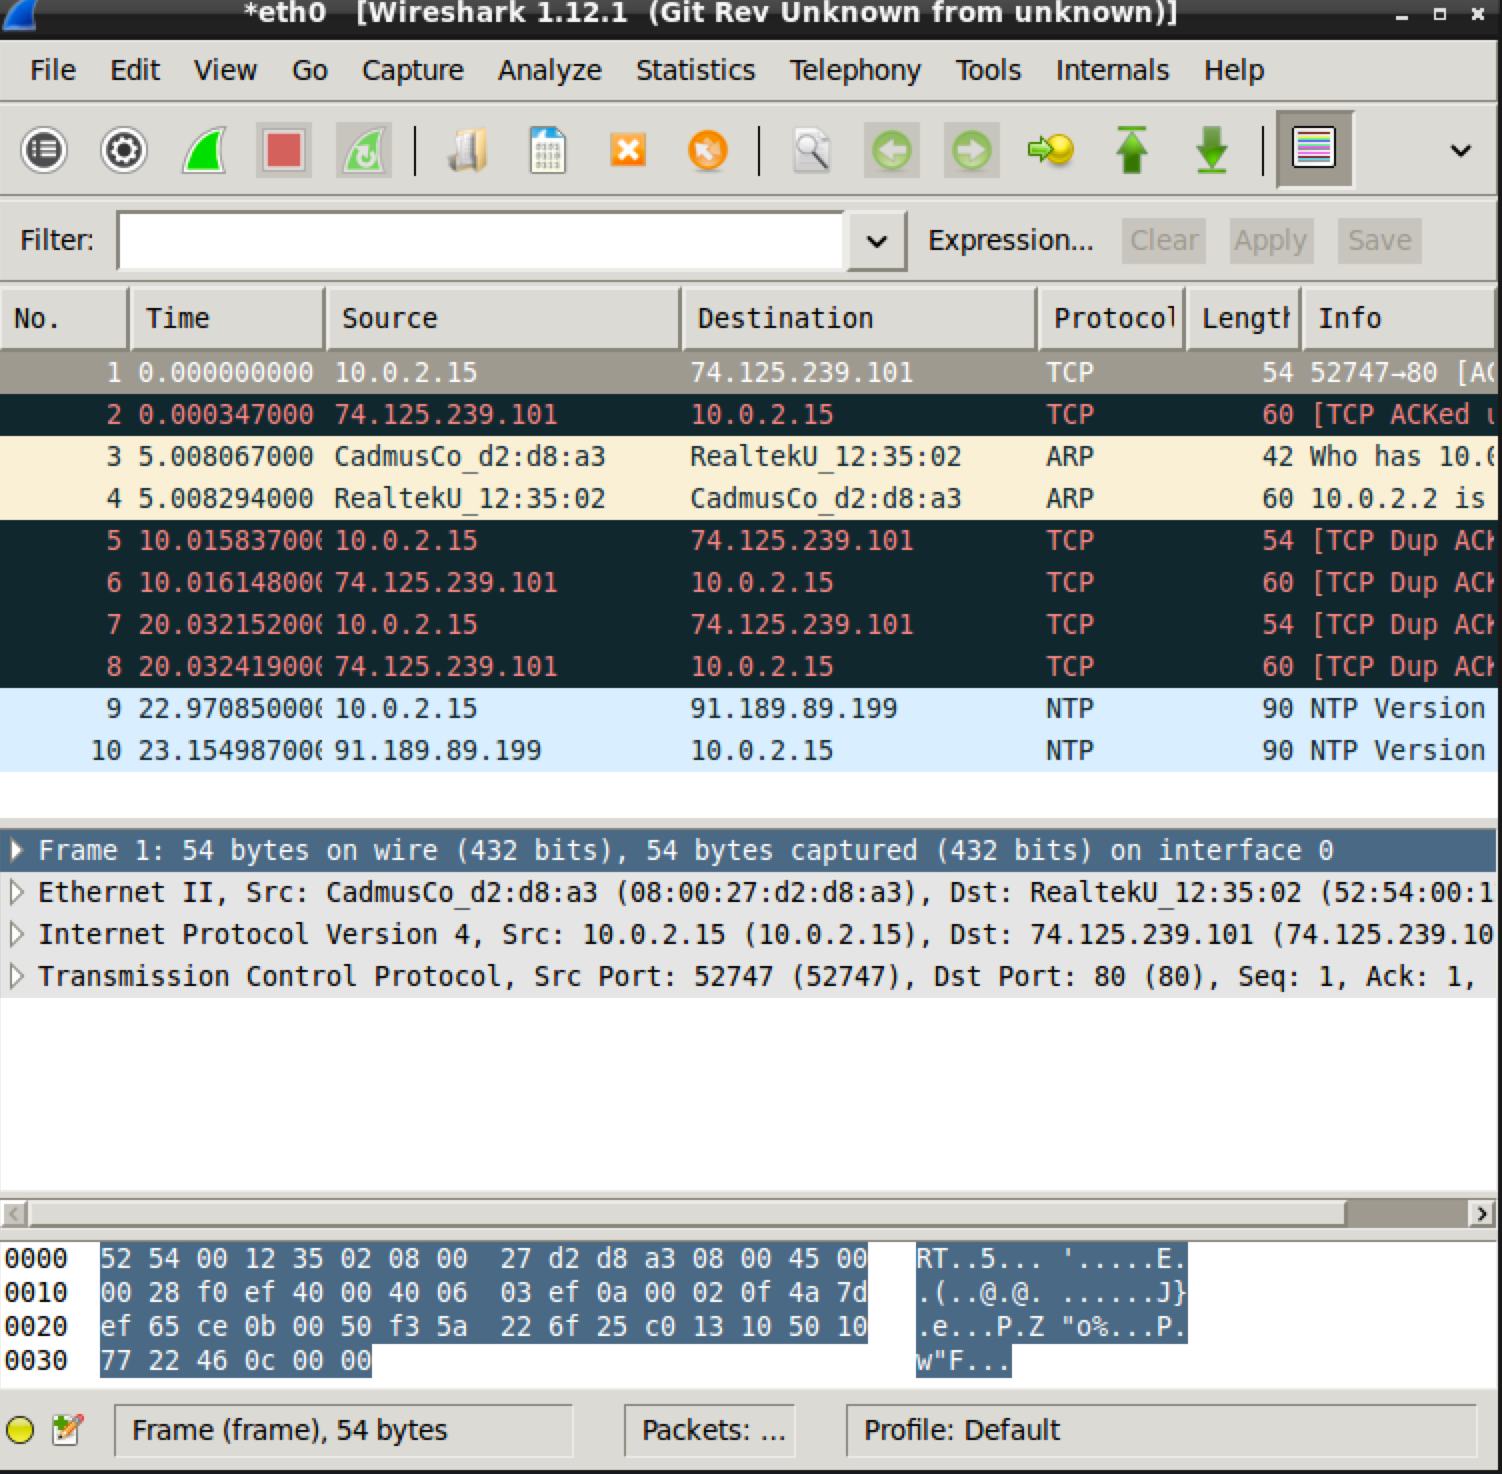 NetworkOS/Wireshark md at master · rkuo/NetworkOS · GitHub